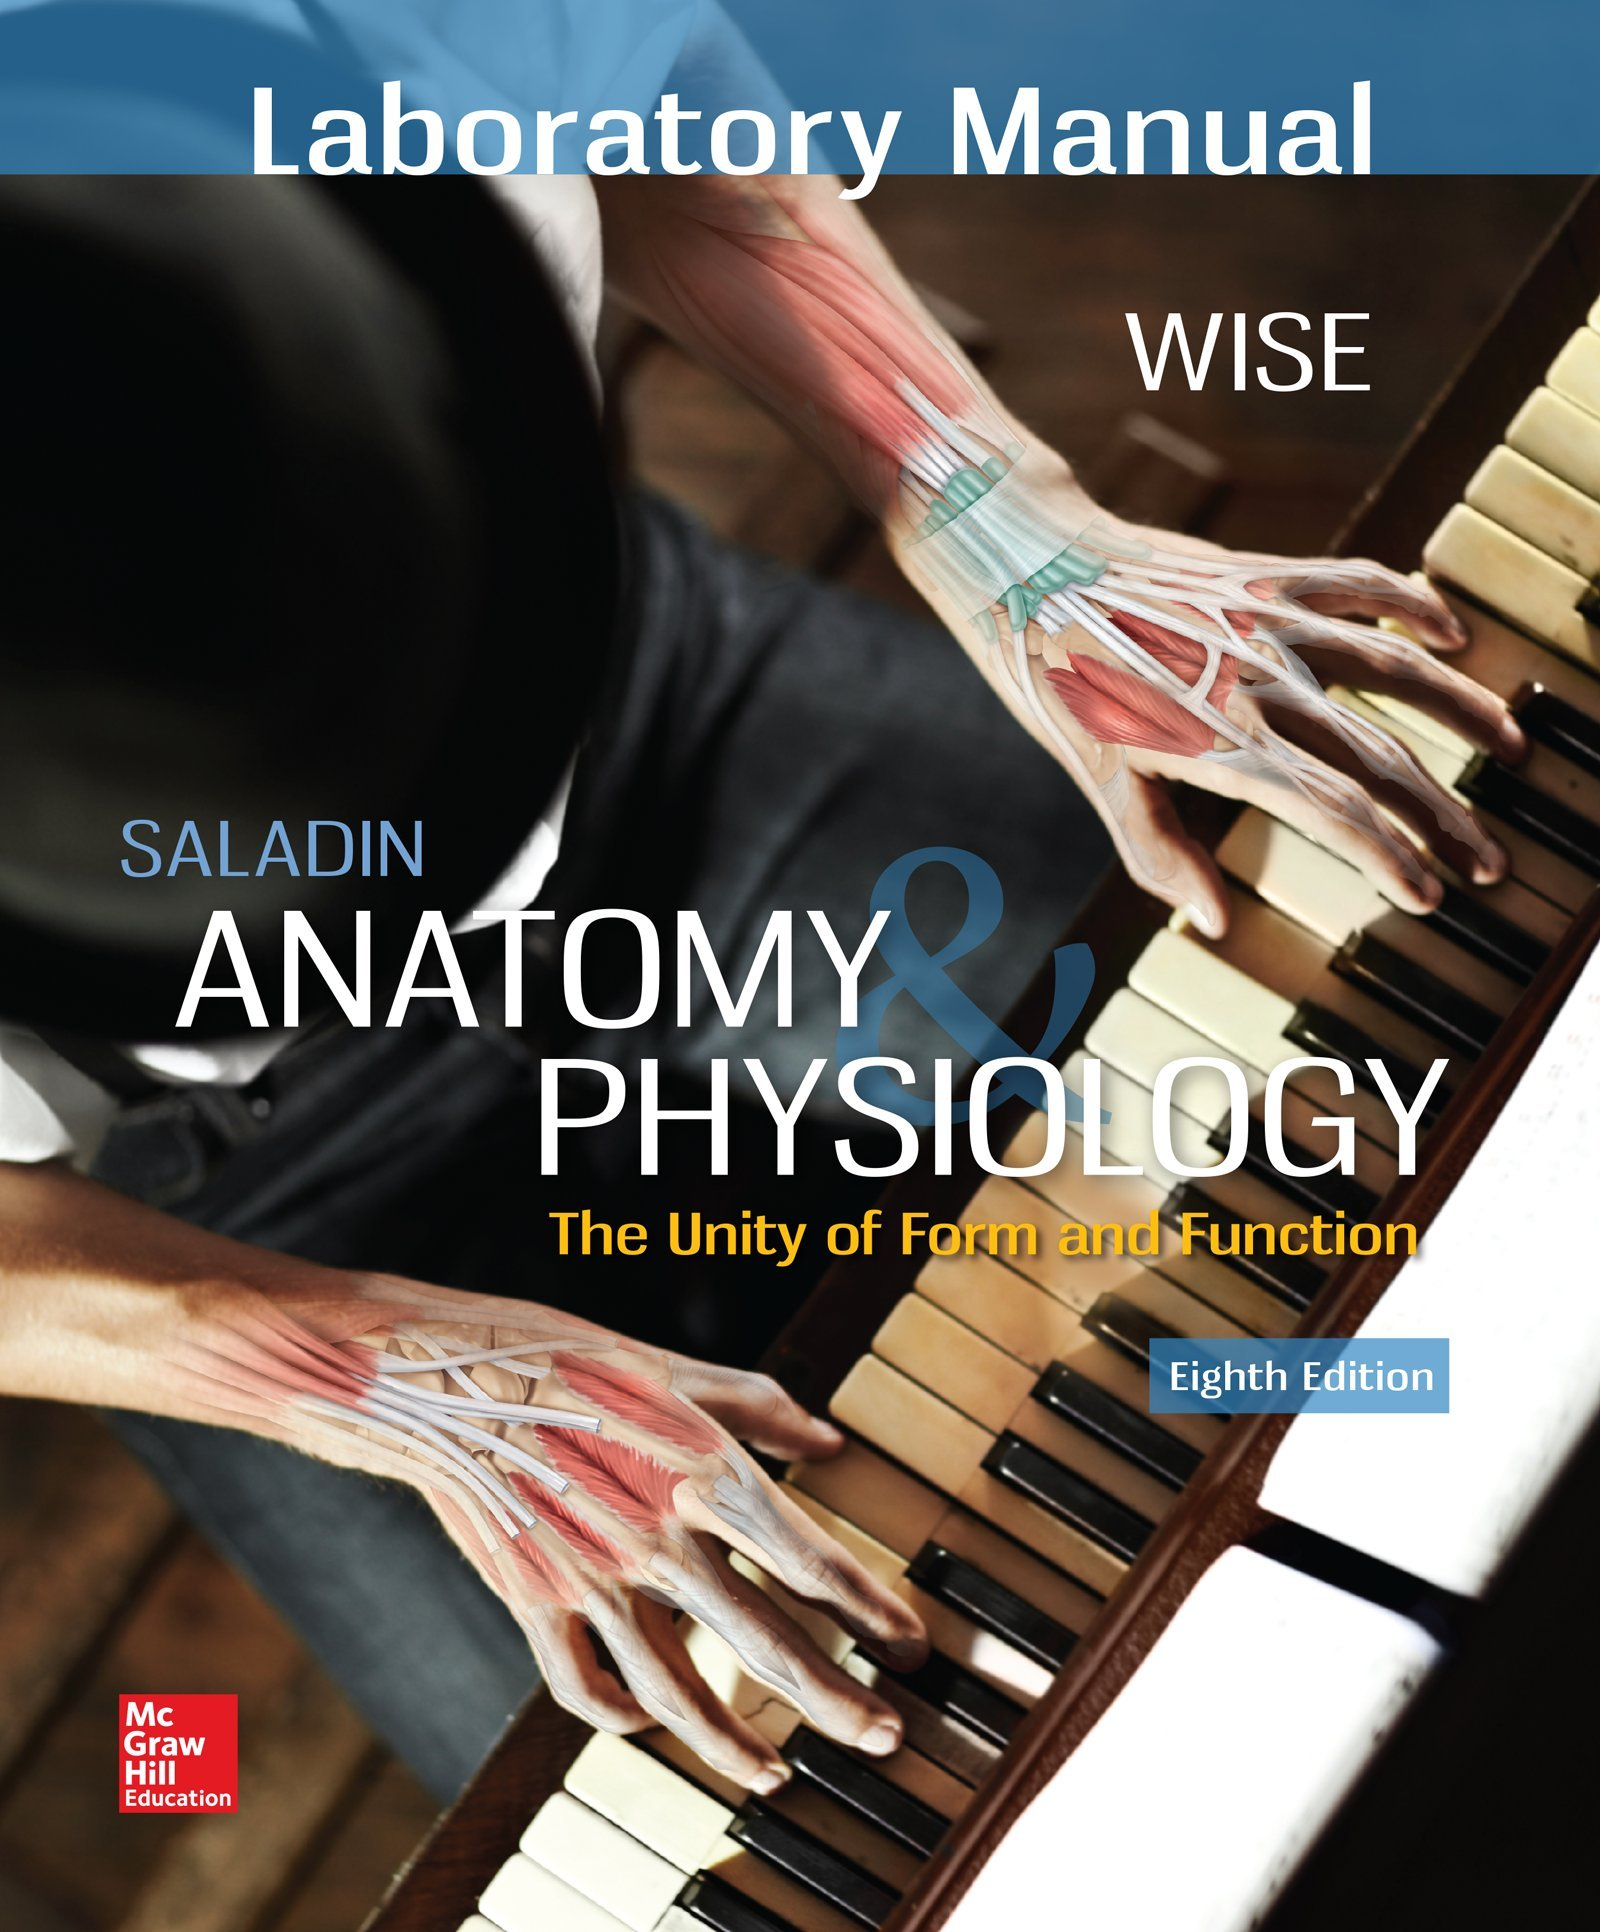 Laboratory Manual for Saladin's Anatomy & Physiology: Eric Wise:  9781259880278: Anatomy & Physiology: Amazon Canada